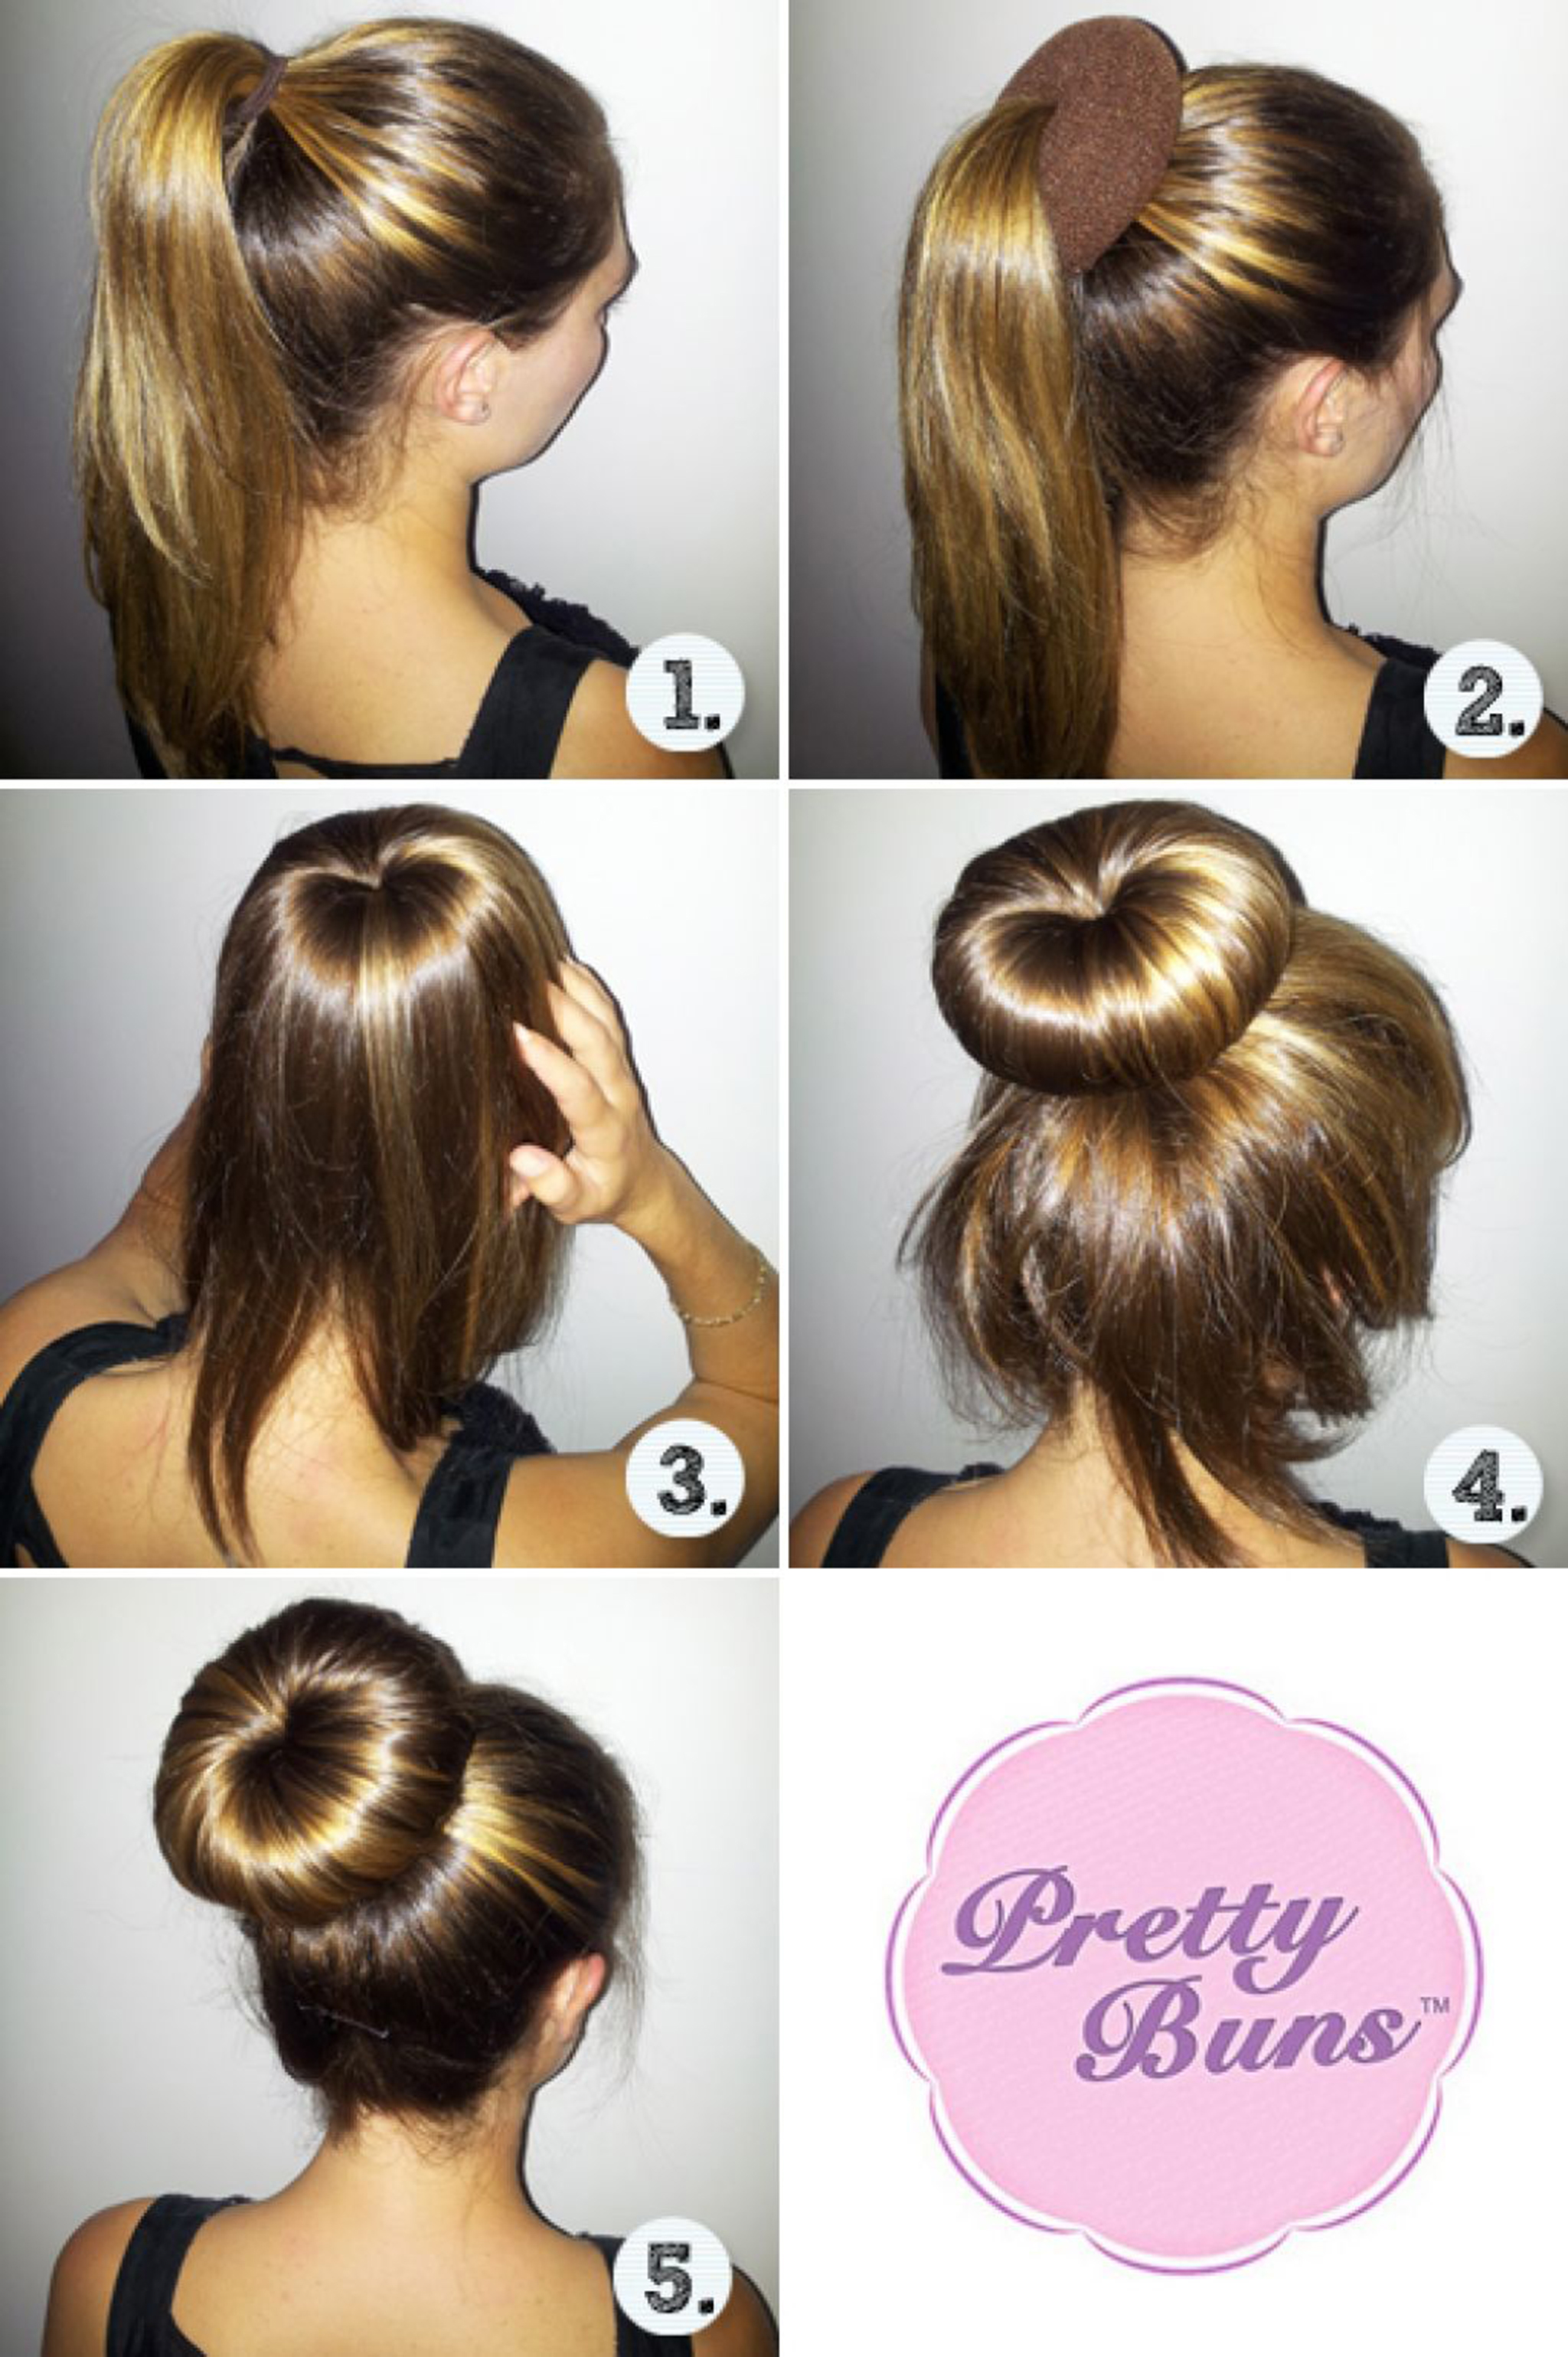 10 Cute Messy Hair Bun Tutorials To Give You Glamorous Look In 10 Minutes | Gymbuddy Now